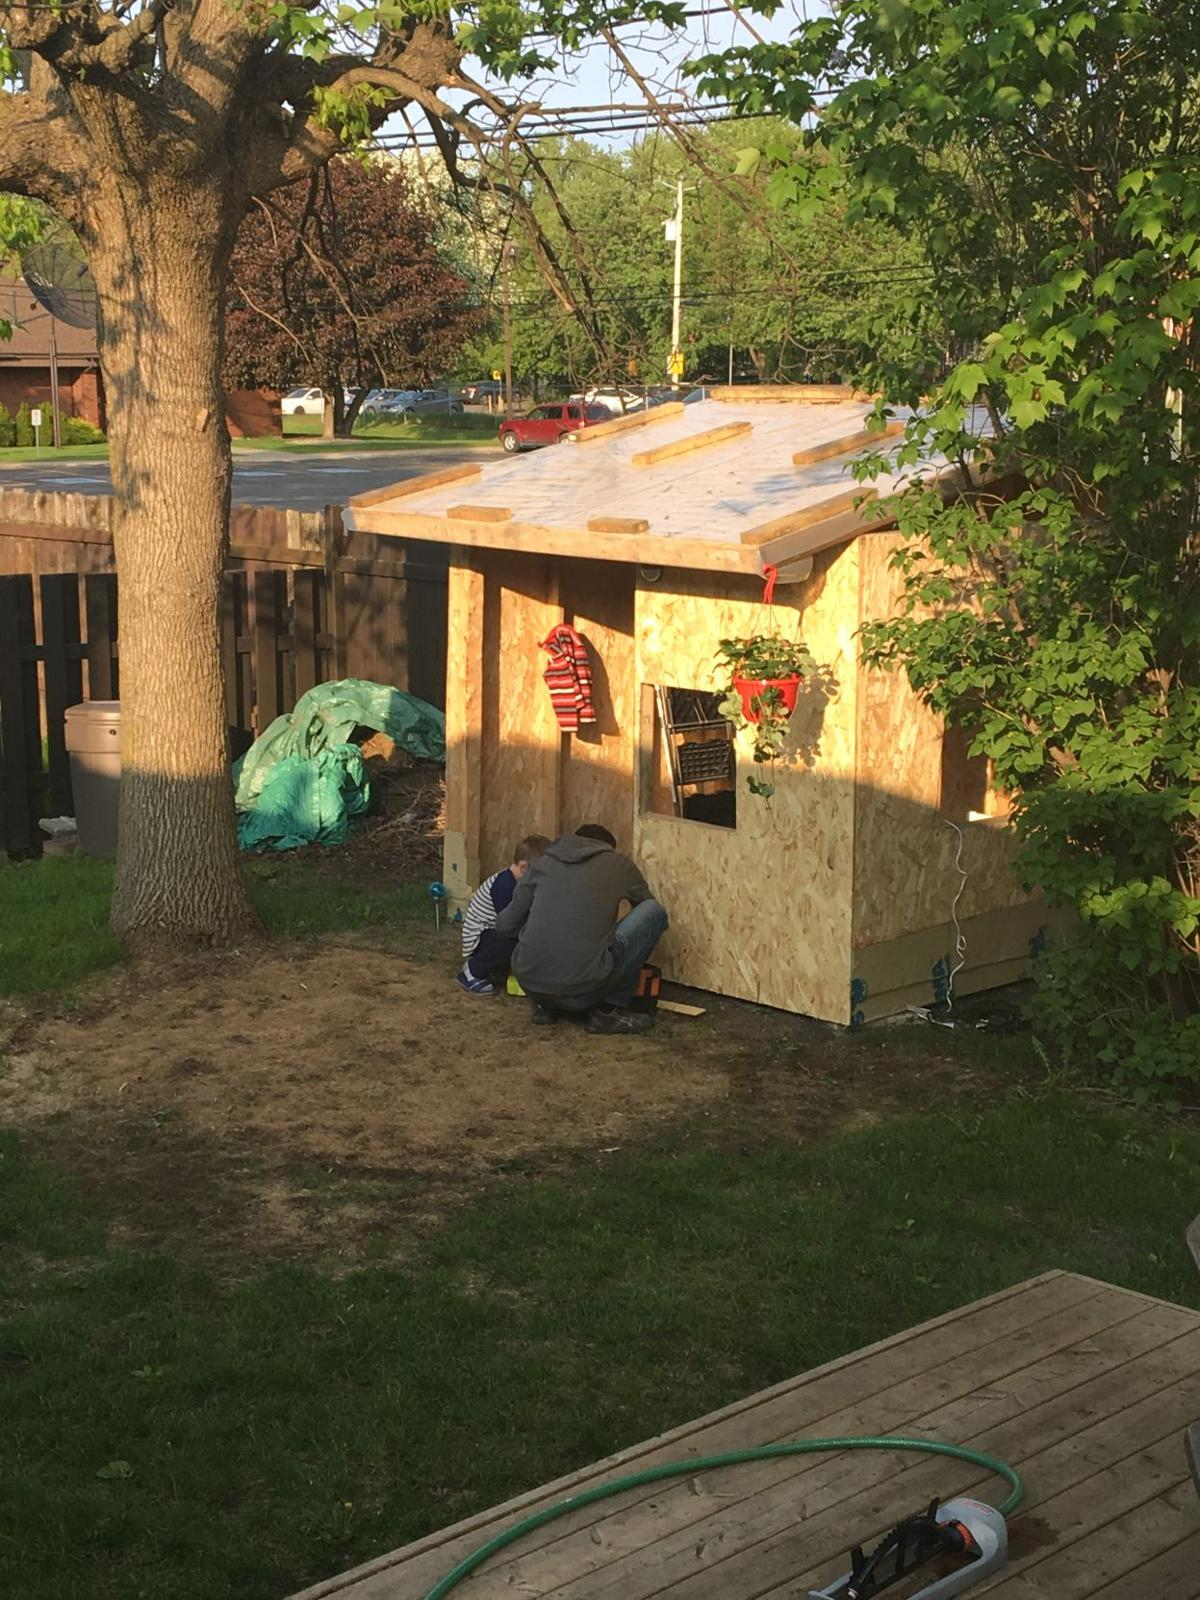 Supermom In Training: We built a playhouse and it's AWESOME